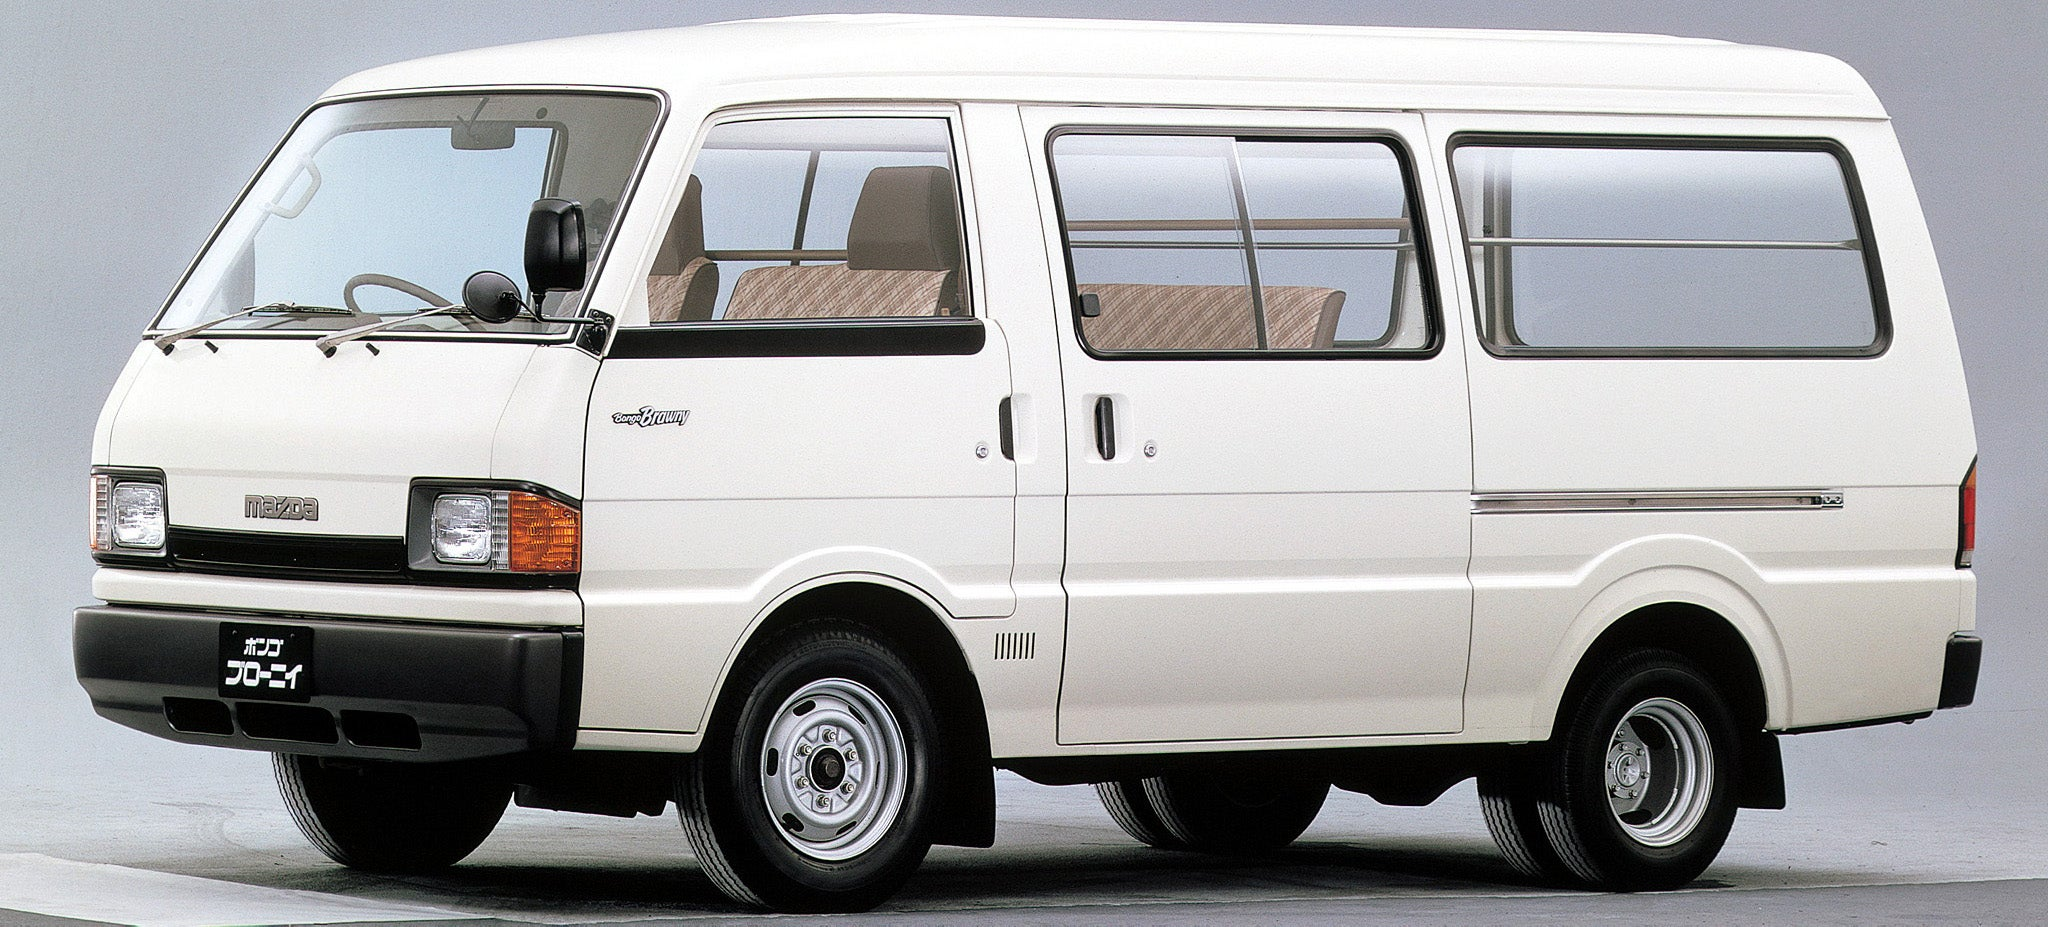 The Mazda Bongo Brawny Is The Best Dually Van Named After ...